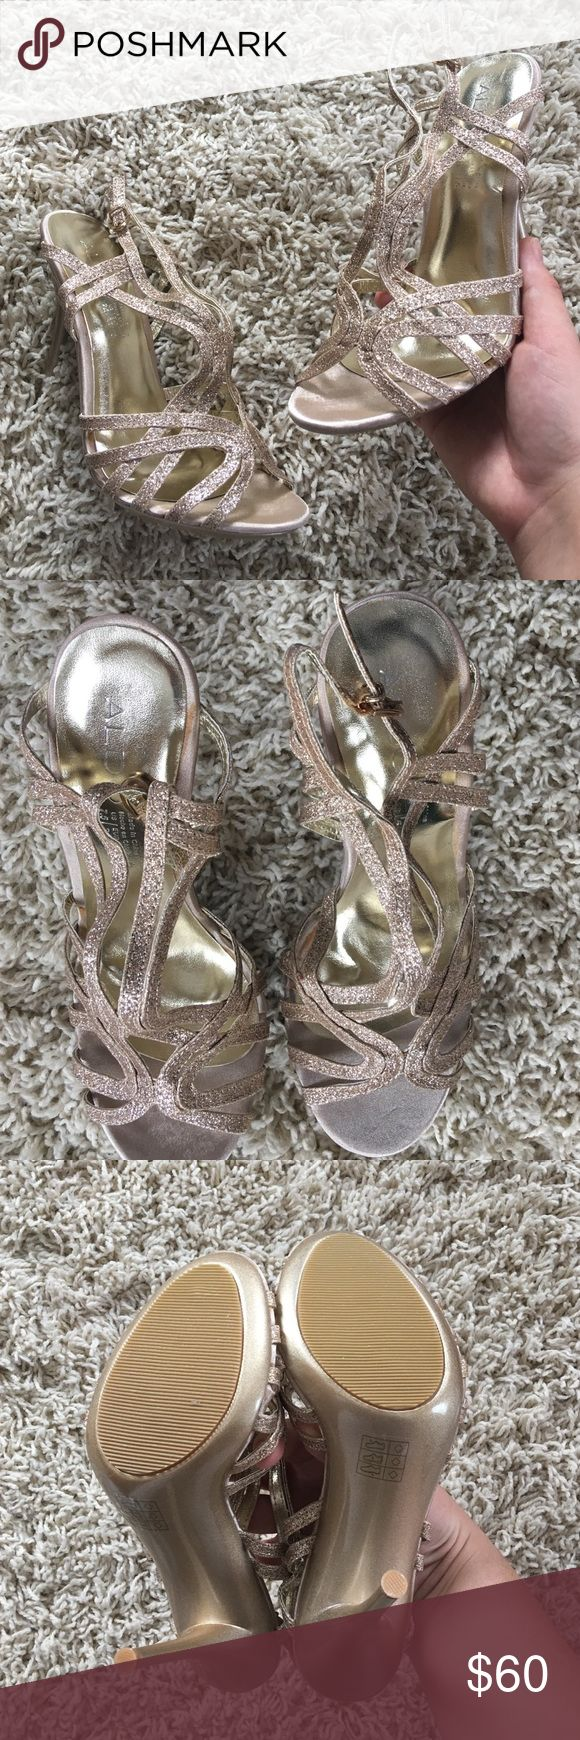 ALDO Champagne Gold Strappy Sandal NWOT. Size 7.5. True to size. BRAND NEW ALDO sparkly Strappy heels. Still has the little plastic thingy on the strap as when I got them. Gorgeous for prom, wedding, or night out! OFFERS ARE WELCOMED 😊 Aldo Shoes Heels